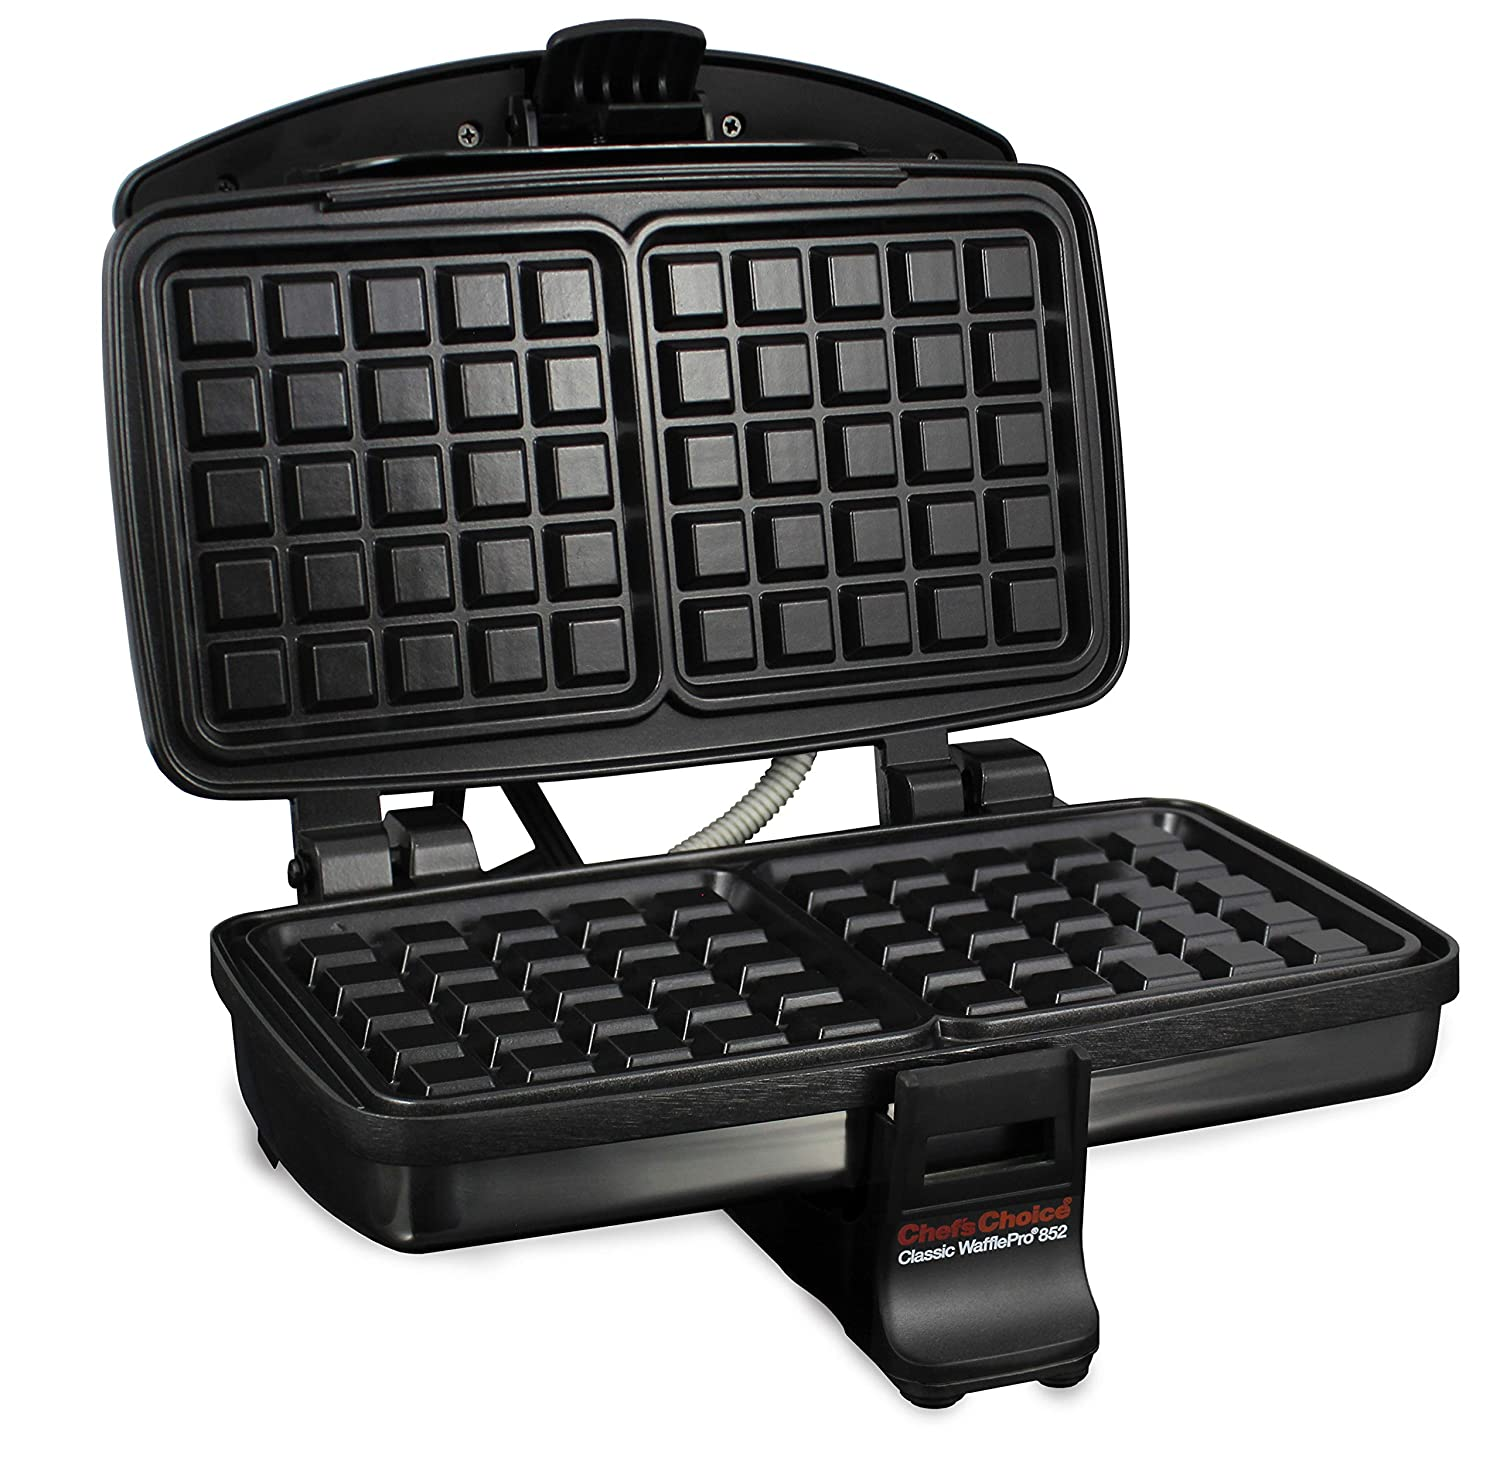 Chef sChoice 852 Classic WafflePro Nonstick Waffle Maker Features Adjustable Baking Control and Instant Temperature Recovery for Delicious Waffles and Includes Built-in Cord Storage, 2-Square, Silver